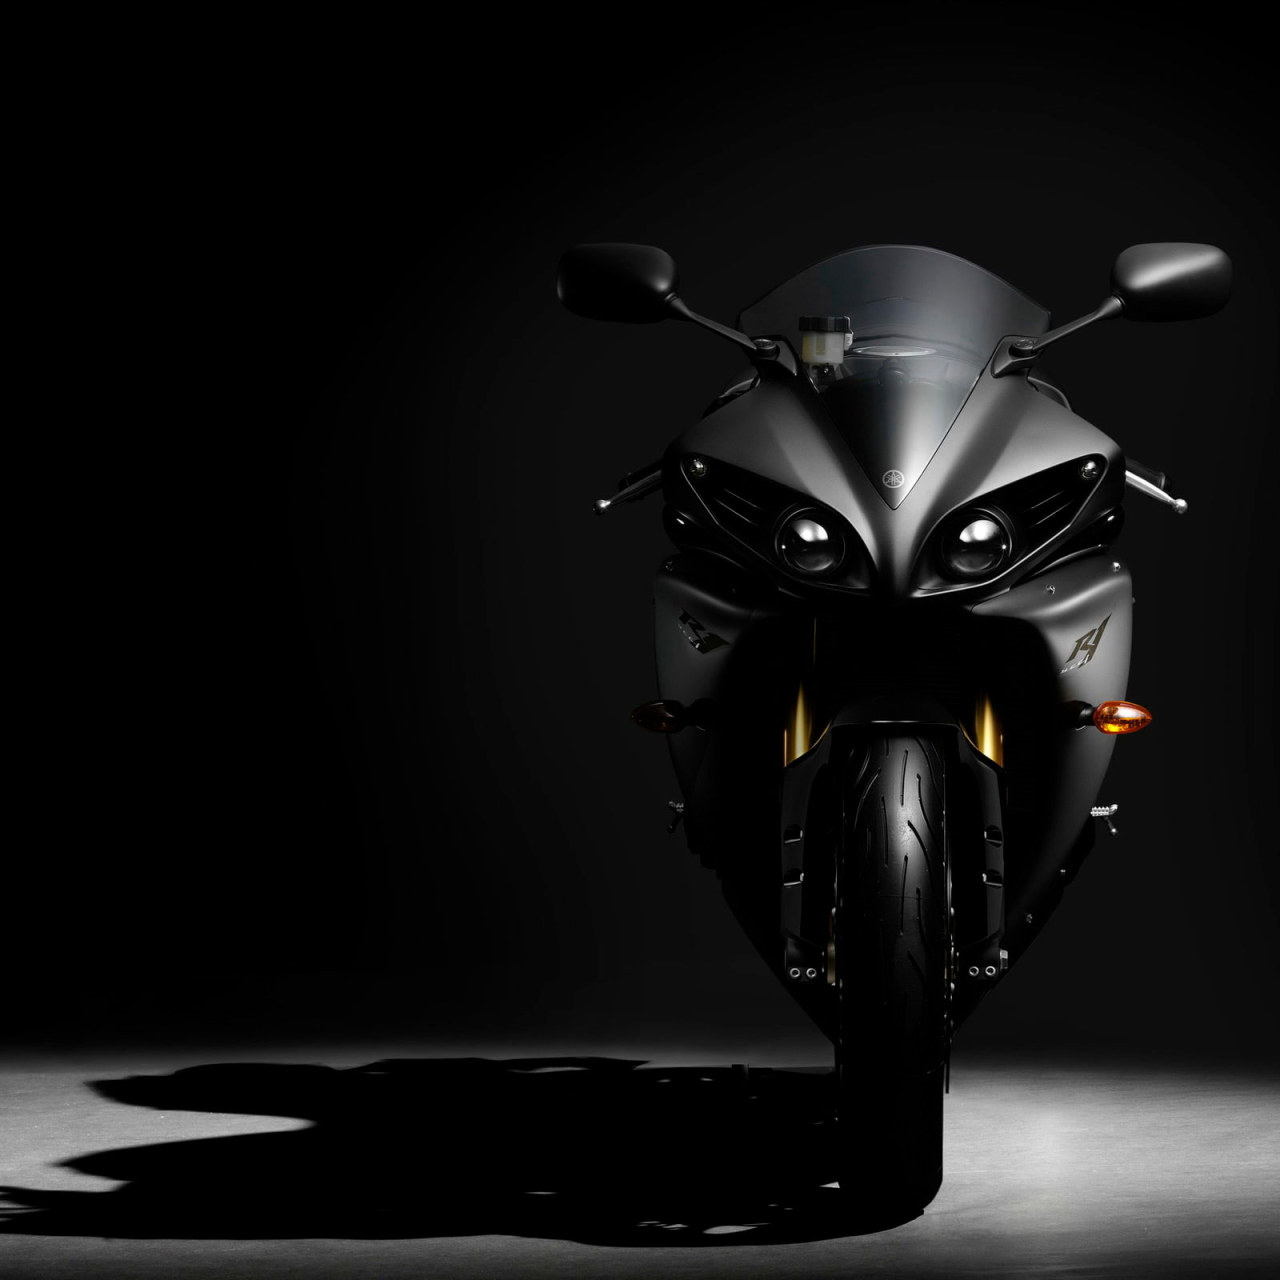 2012 yamaha yzf r1 hd wallpaper black sport motorcycle bikes motorcycles